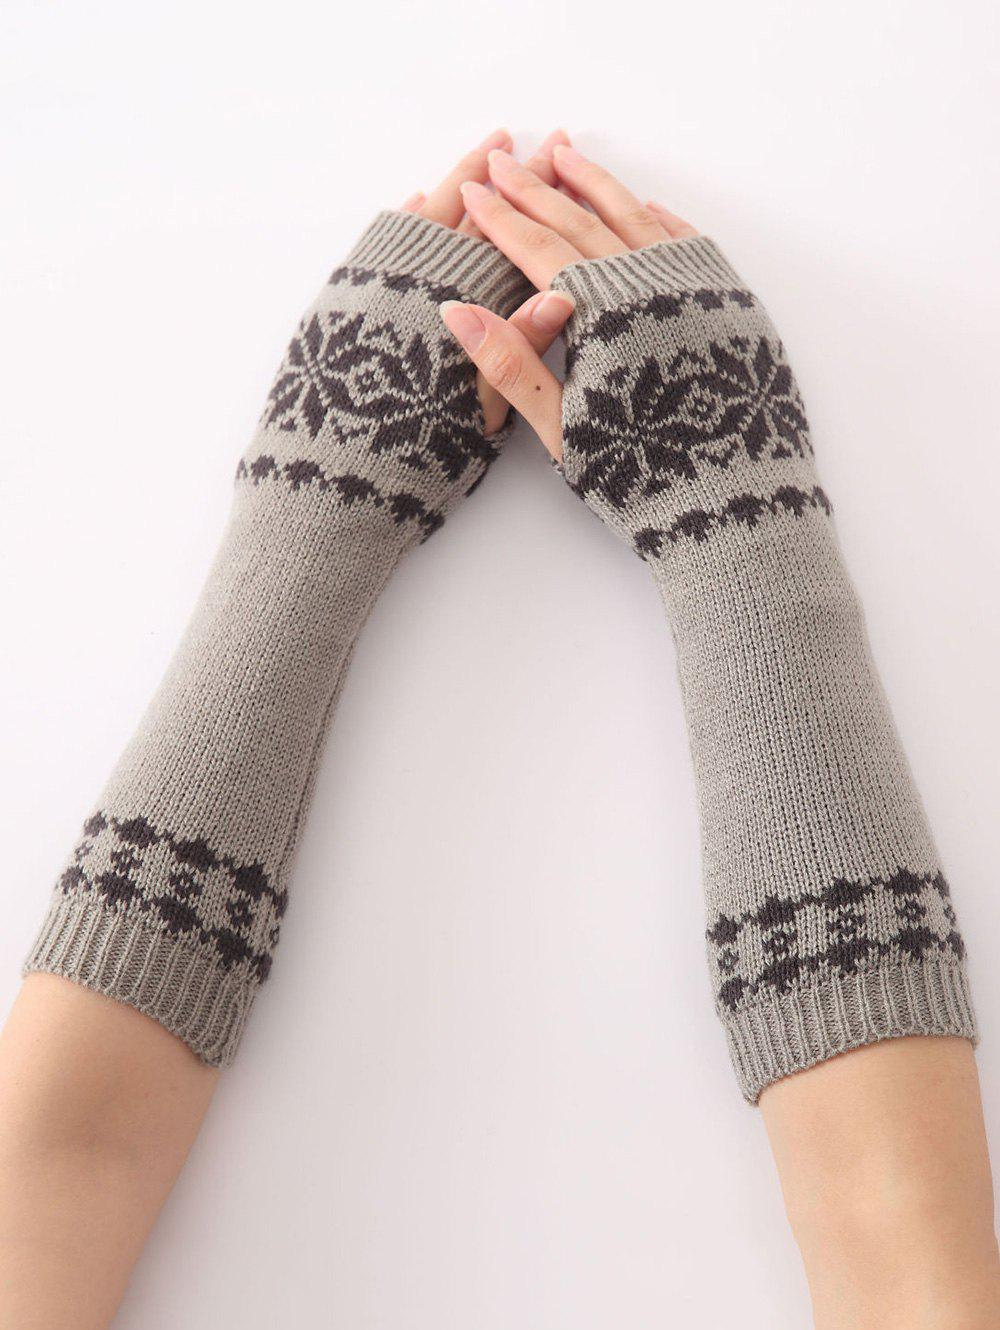 Winter Warm Christmas Snow Floral Crochet Knit Arm WarmersACCESSORIES<br><br>Color: LIGHT GRAY; Group: Adult; Gender: For Women; Style: Fashion; Glove Length: Elbow; Pattern Type: Floral; Material: Acrylic; Weight: 0.066kg; Package Contents: 1 x Arm Warmers(Pair);